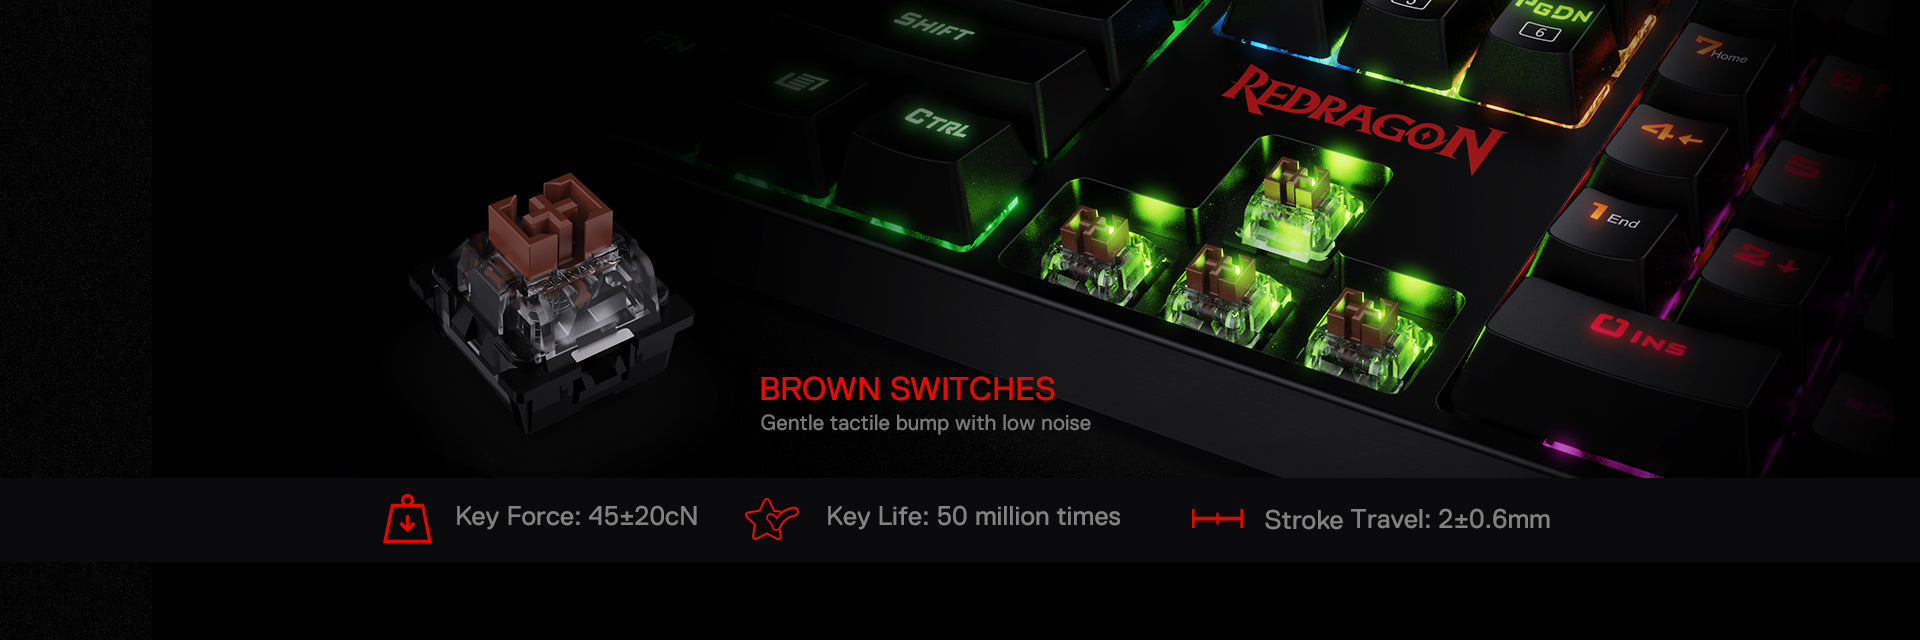 redragon k582 brown switches